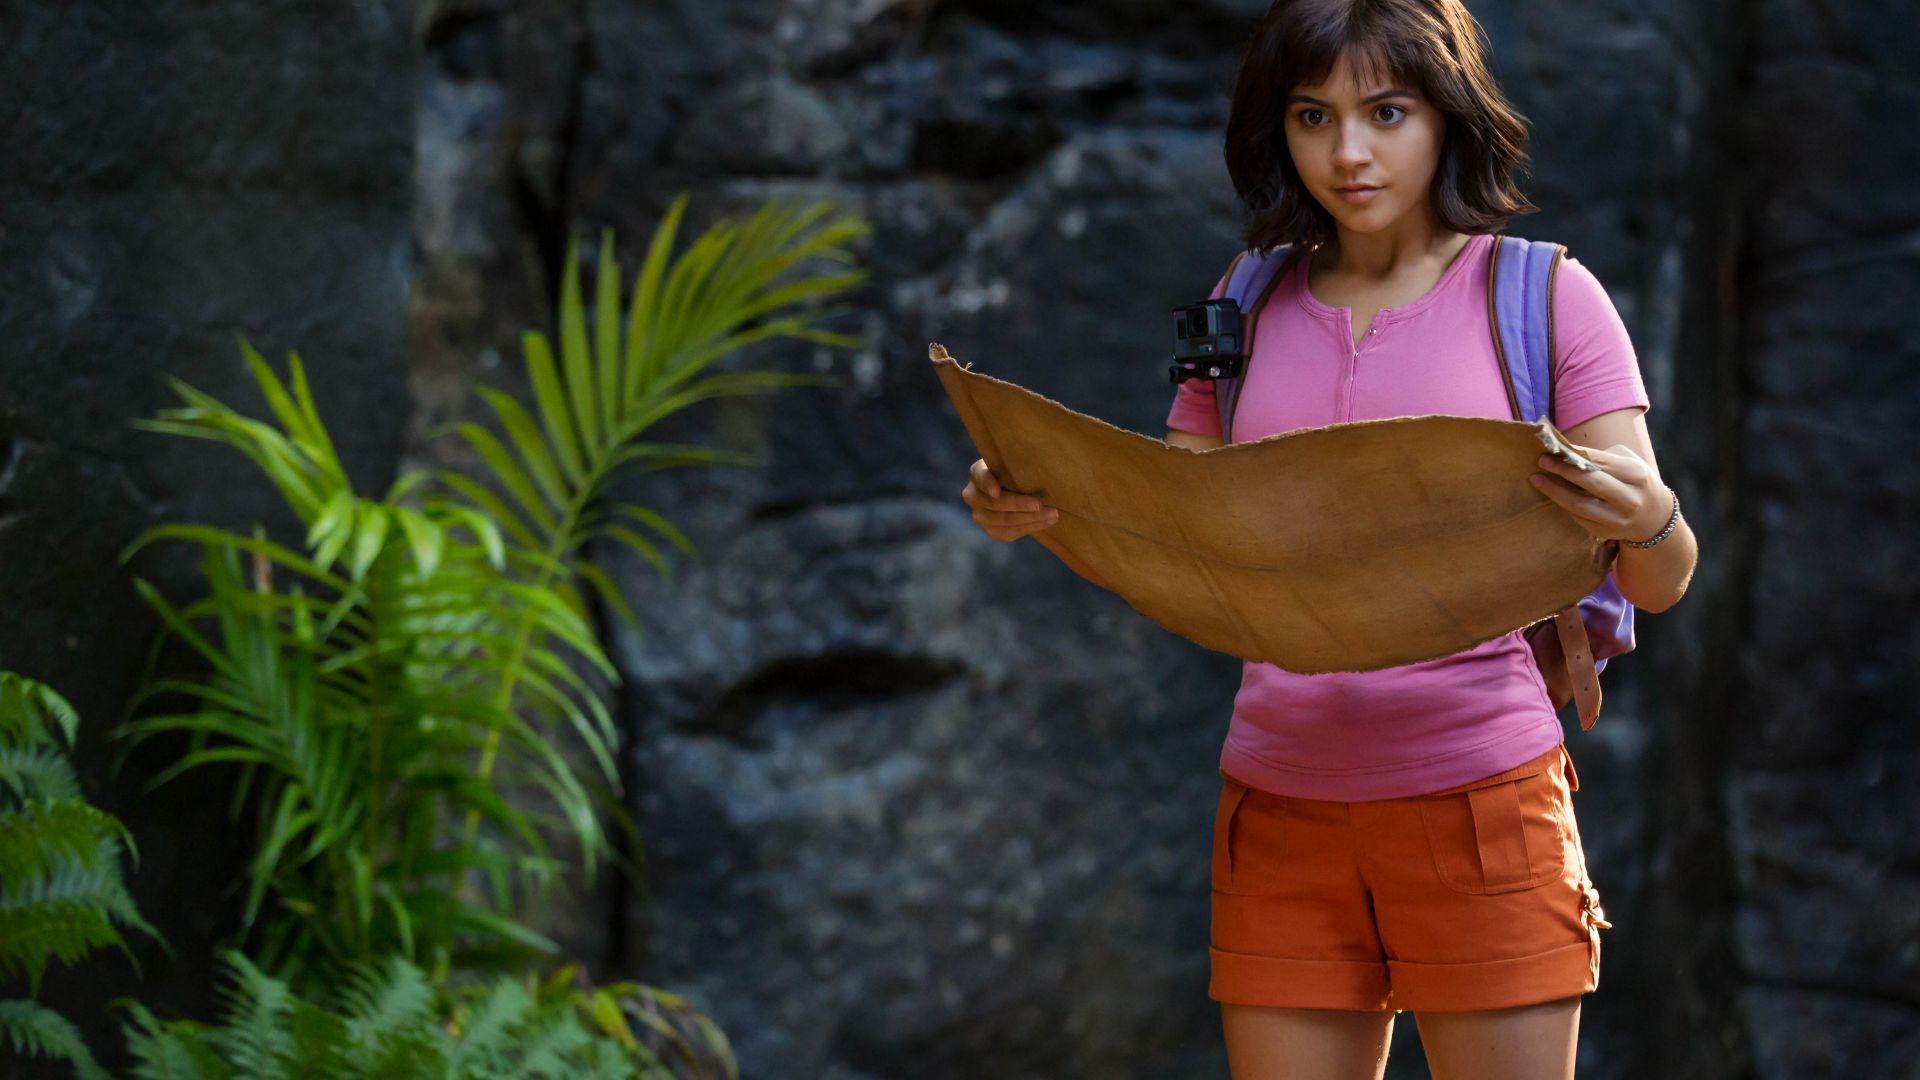 Dora And The Lost City Of Gold, Isabela Moner, 5K (horizontal)